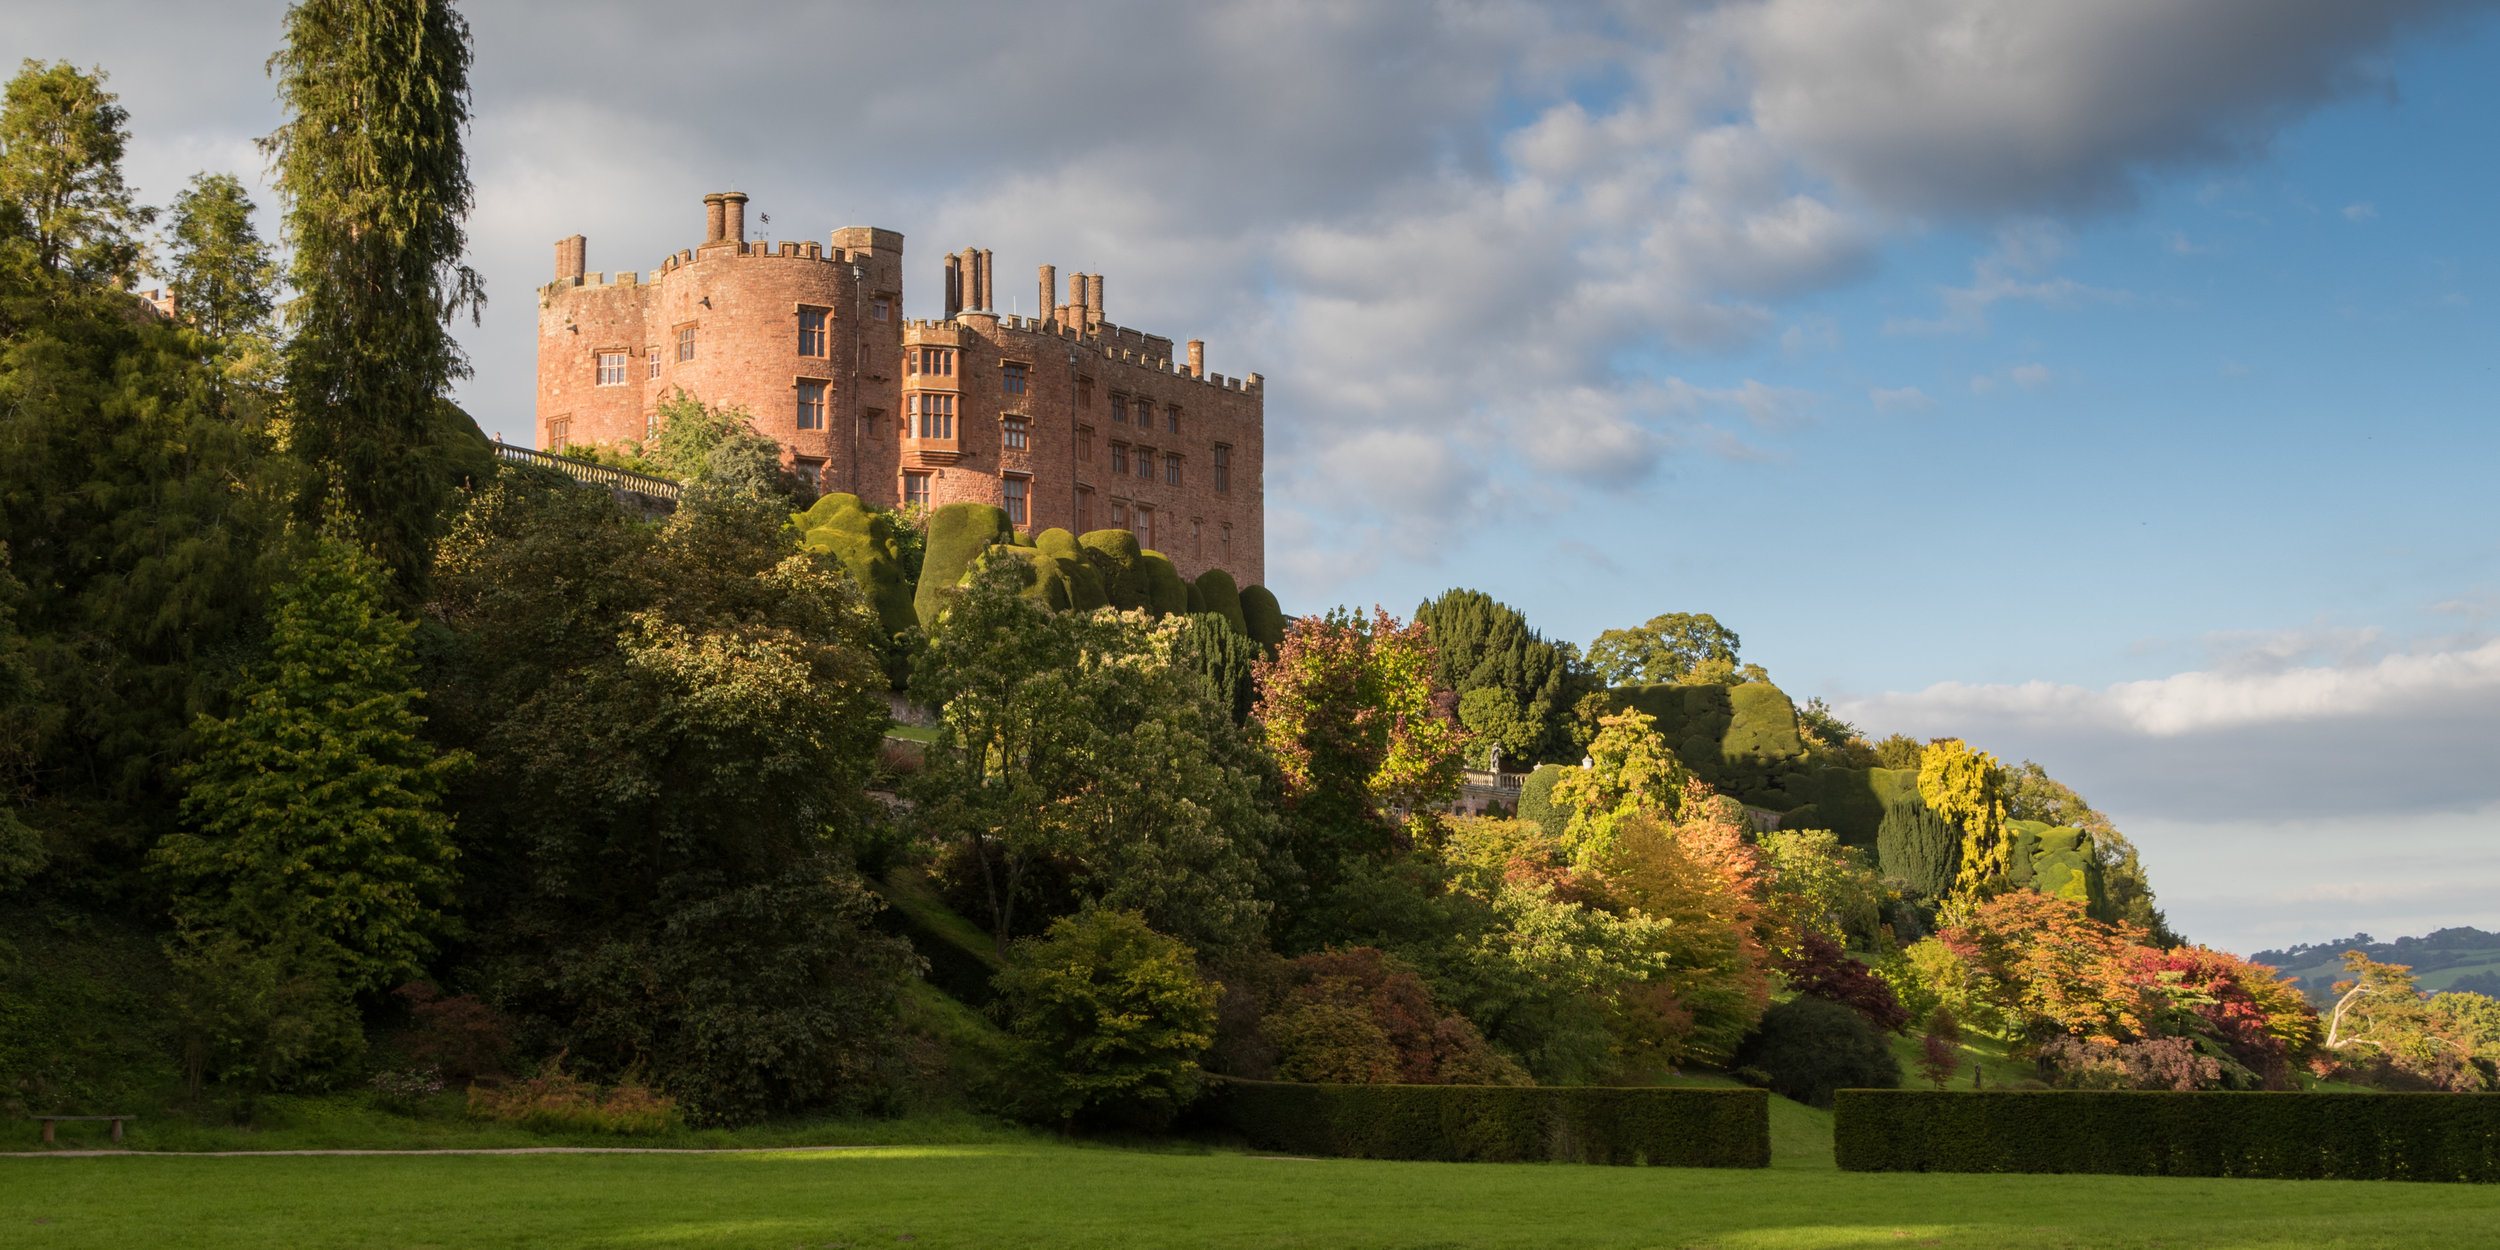 Trees in Autumn Colour at Powis Castle. Image: Chris Denning/ Verve Garden Design.